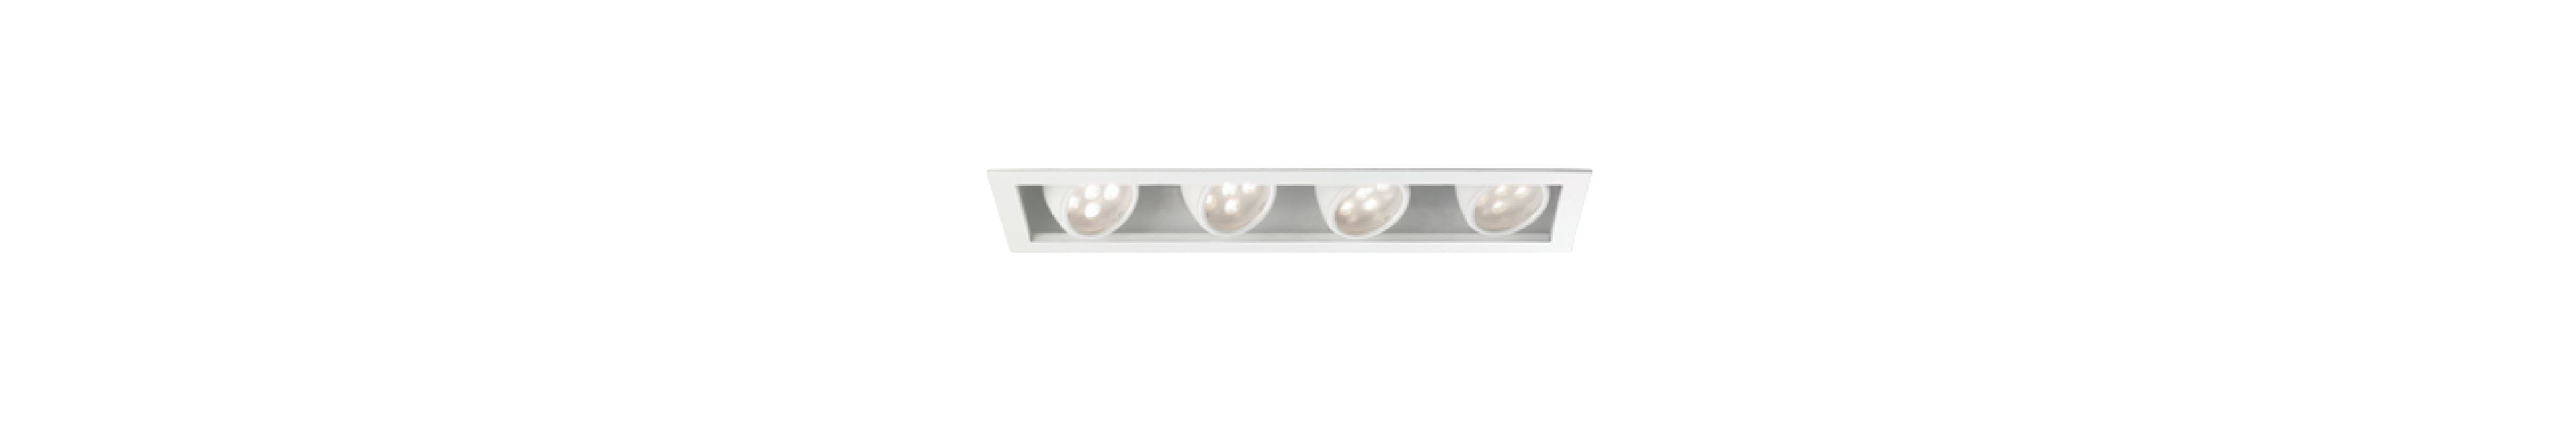 WAC Lighting MT-LED418F-WWHS Multiple Spot 3000K High Output LED